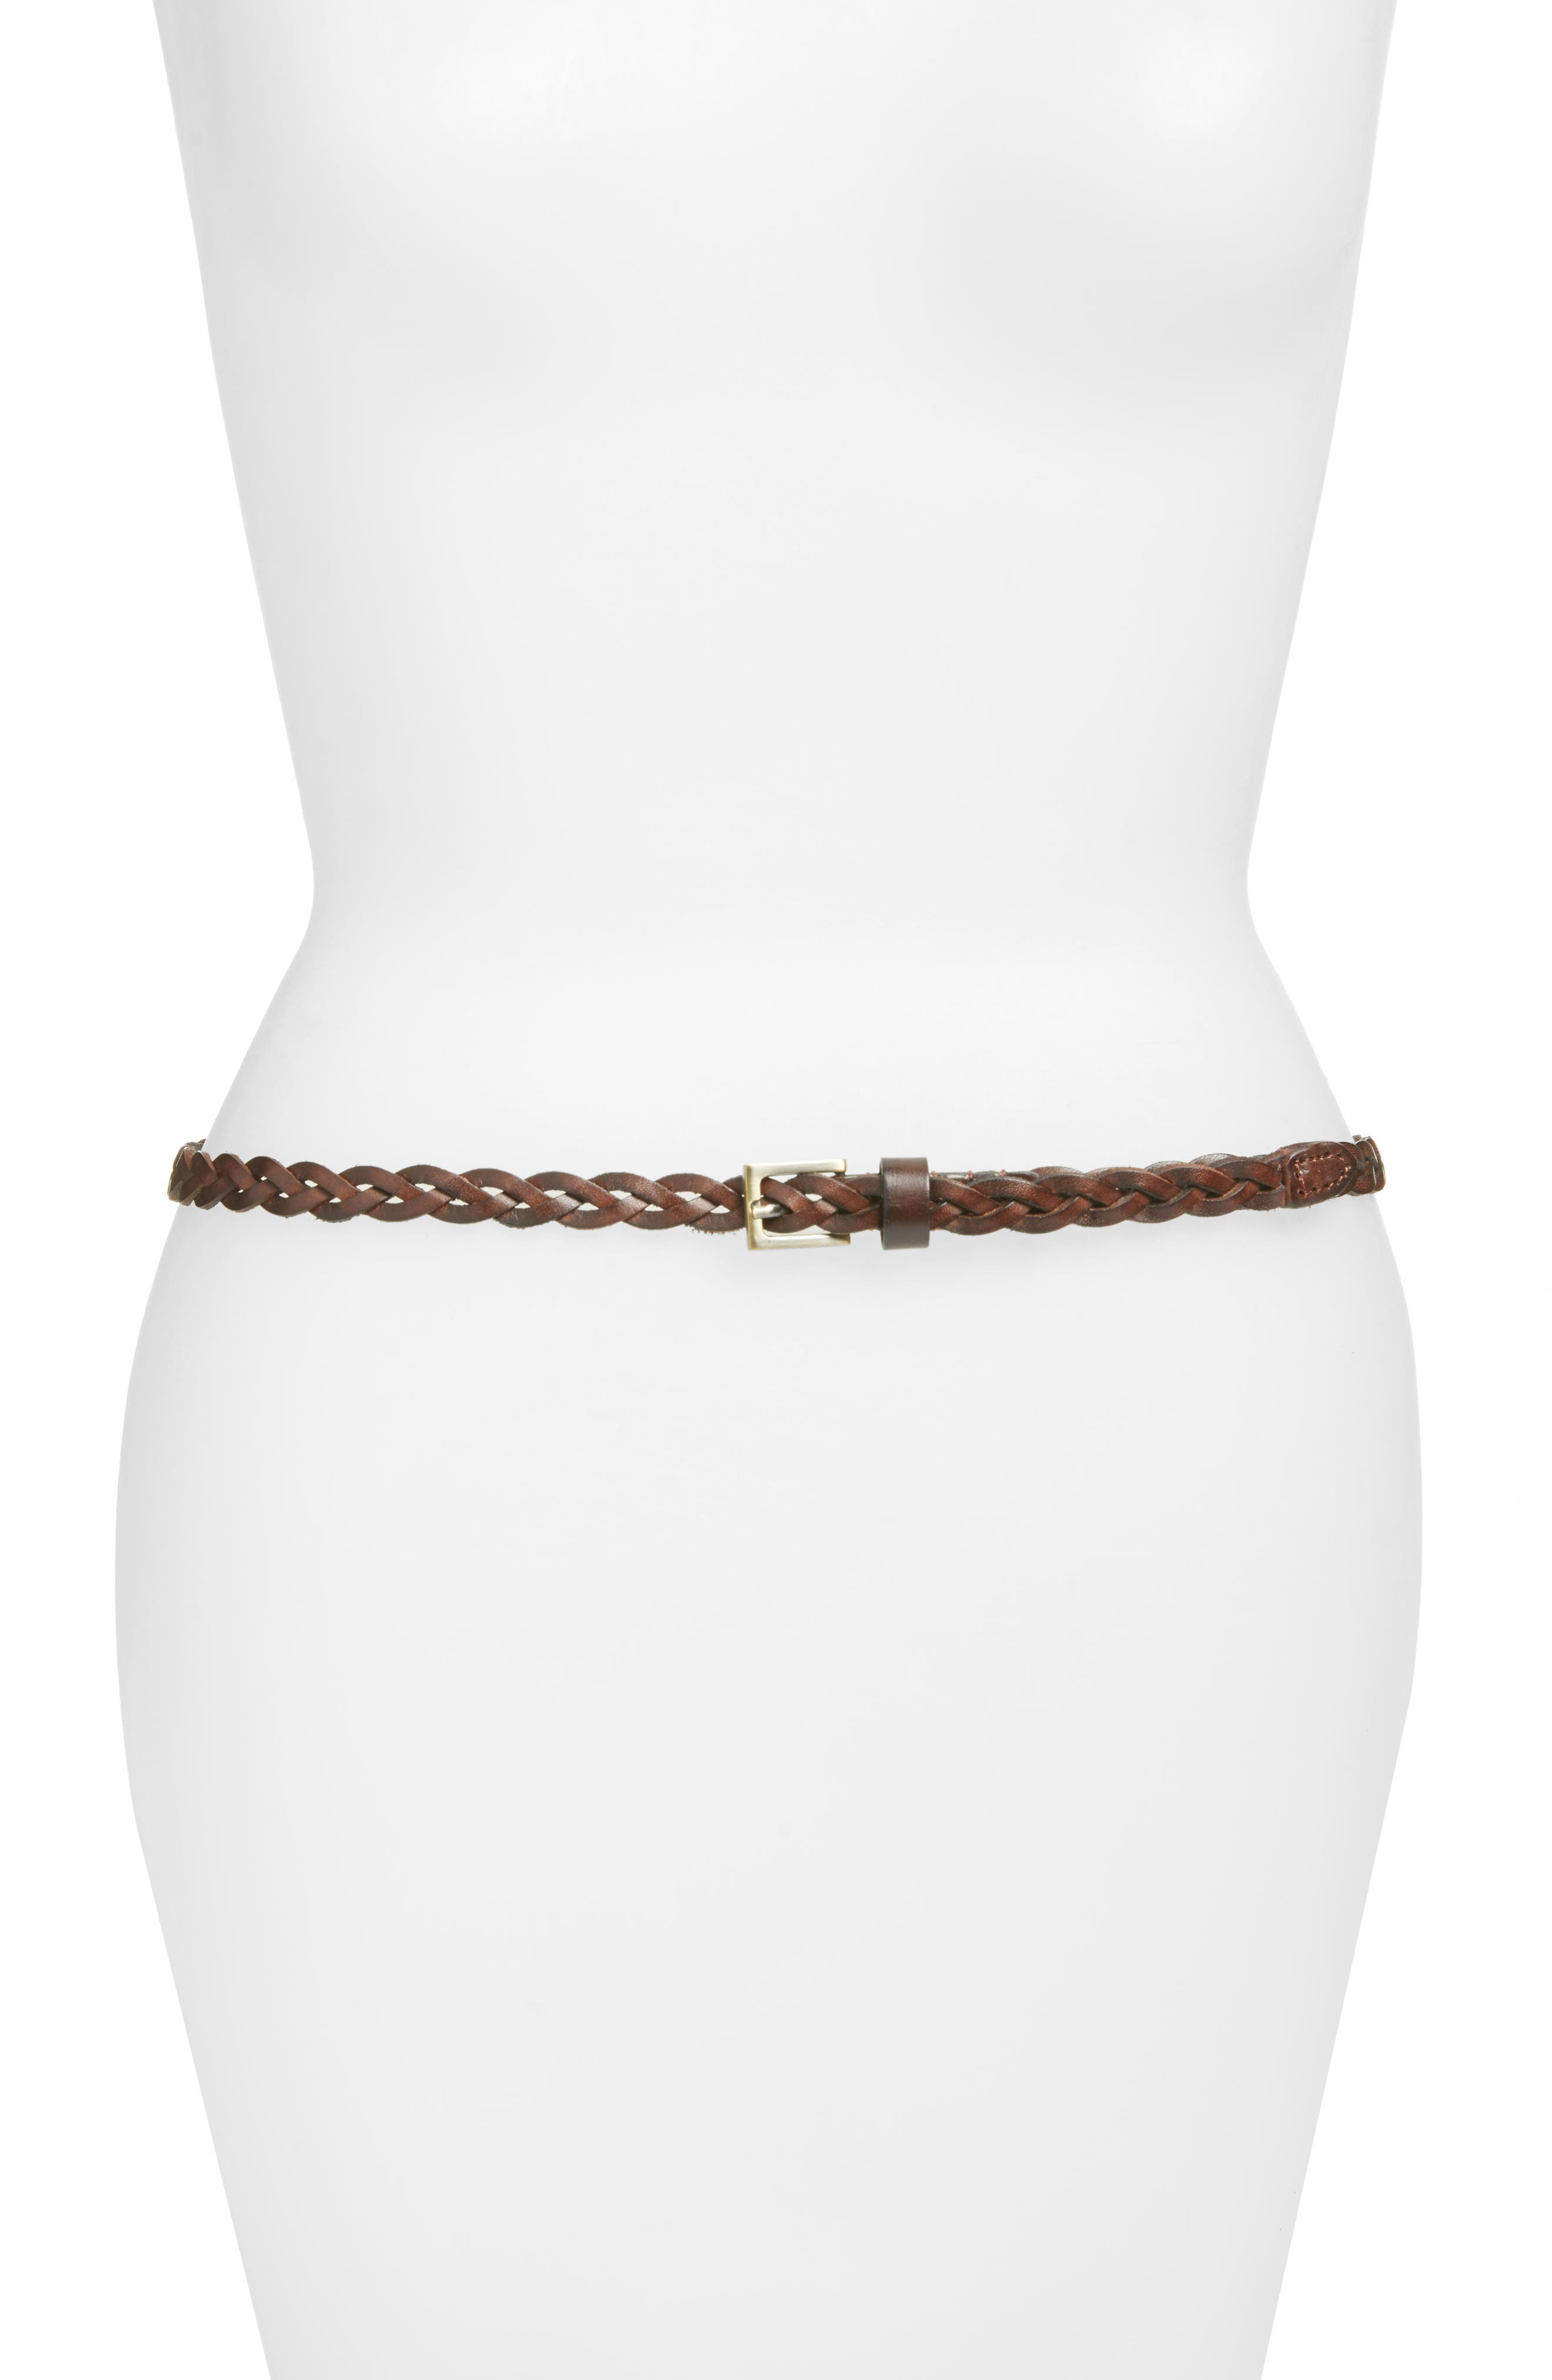 Lawrence Braided Leather Belt,                         Main,                         color, 201